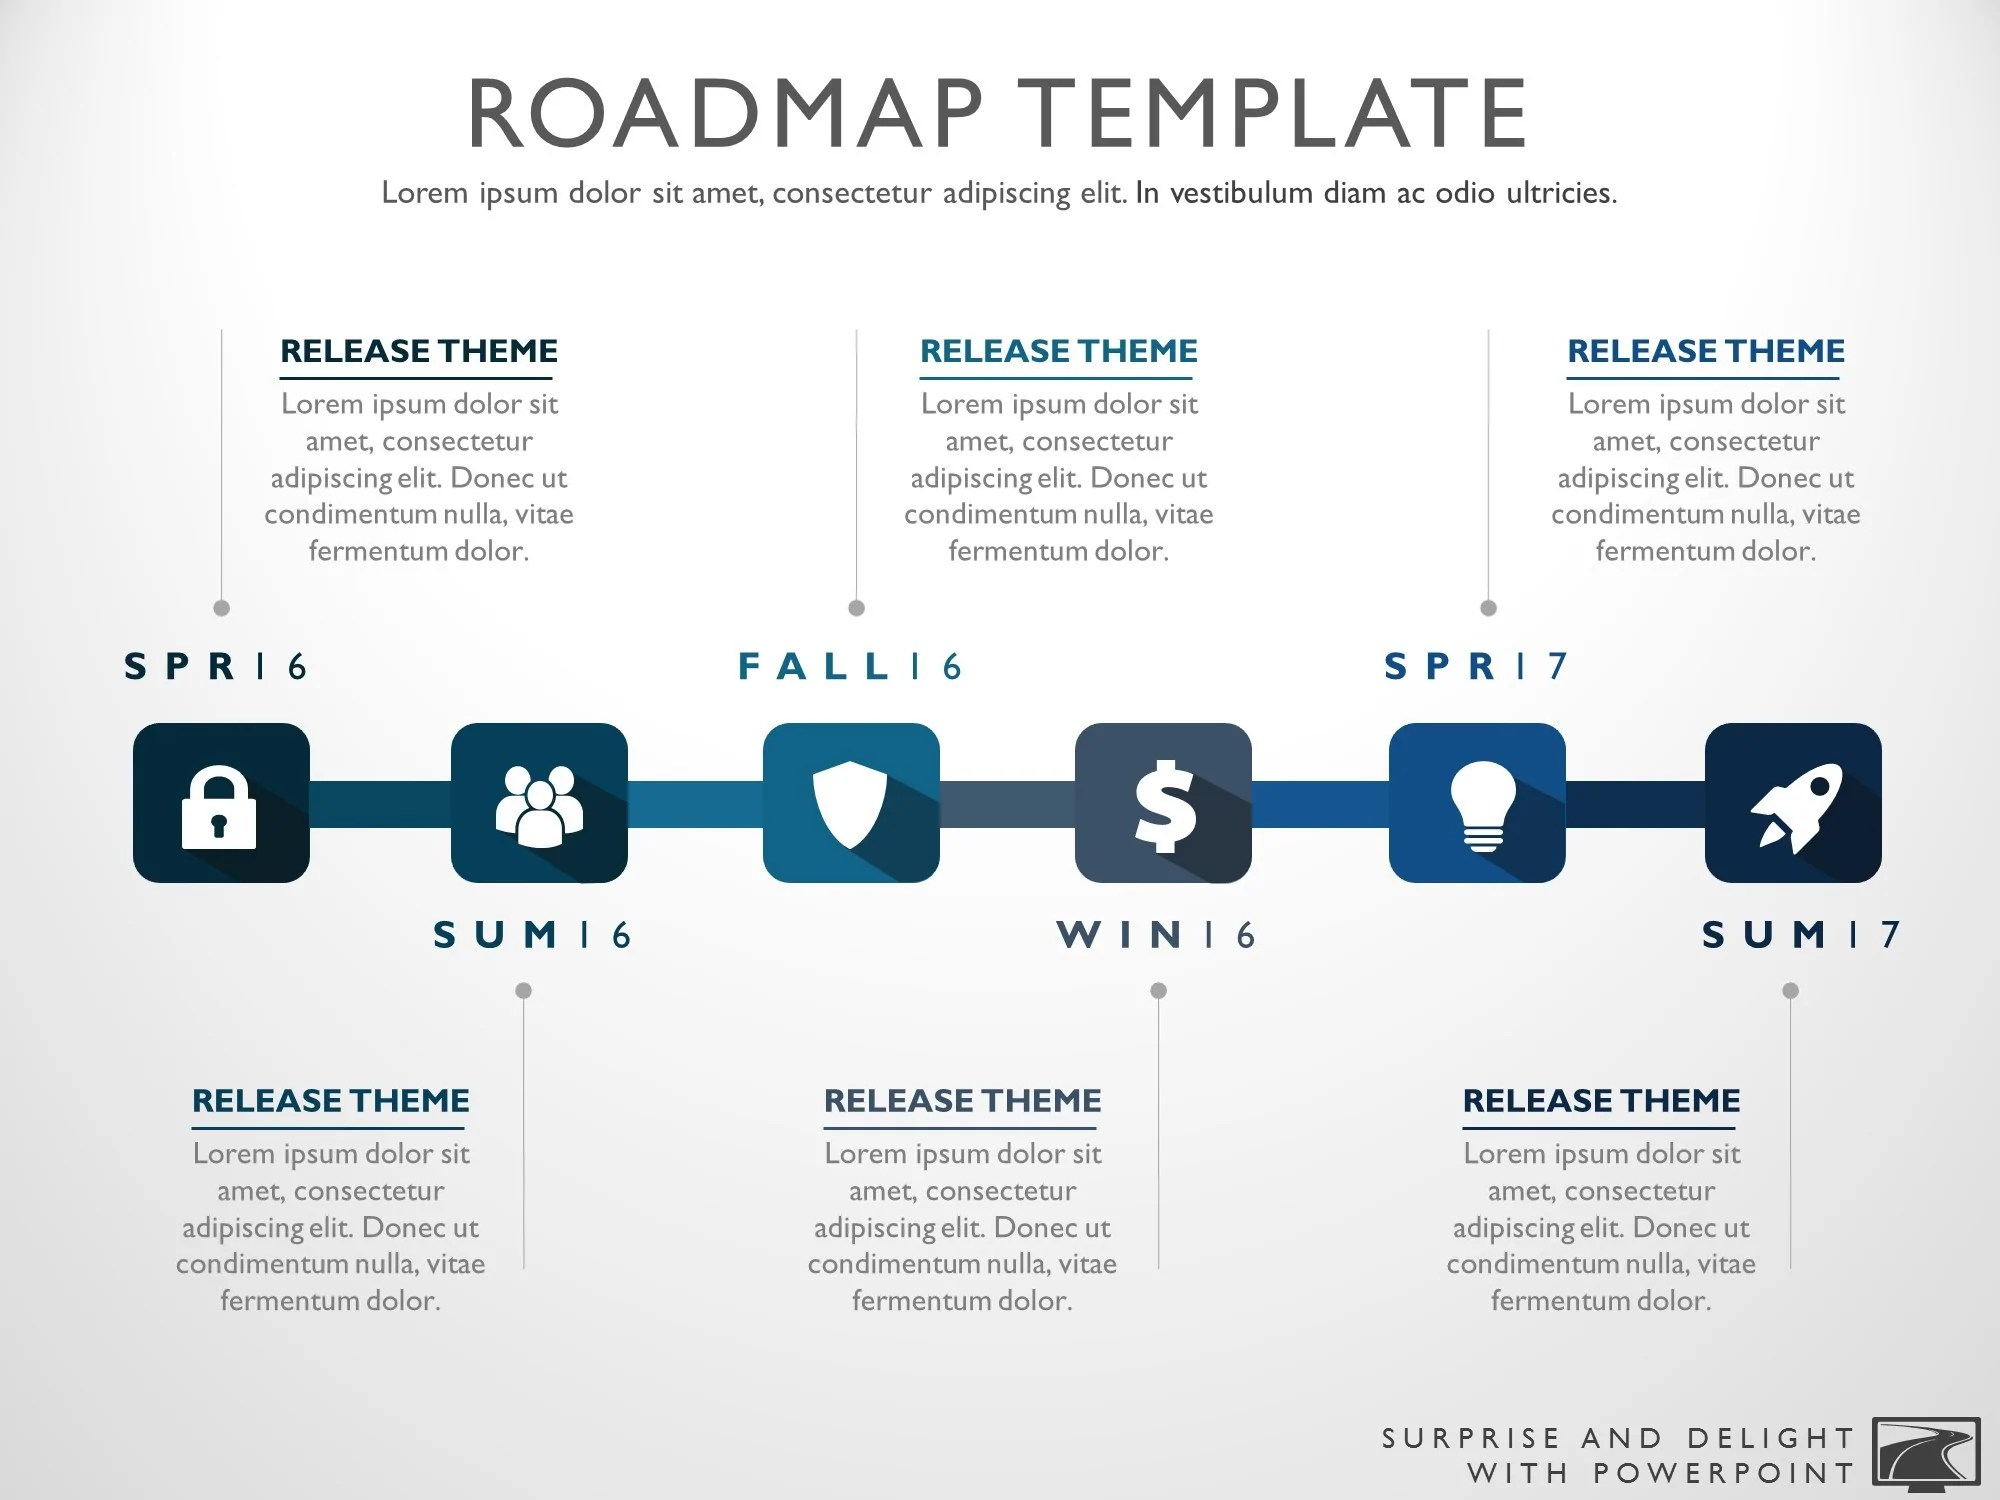 Product roadmap templates for Powerpoint